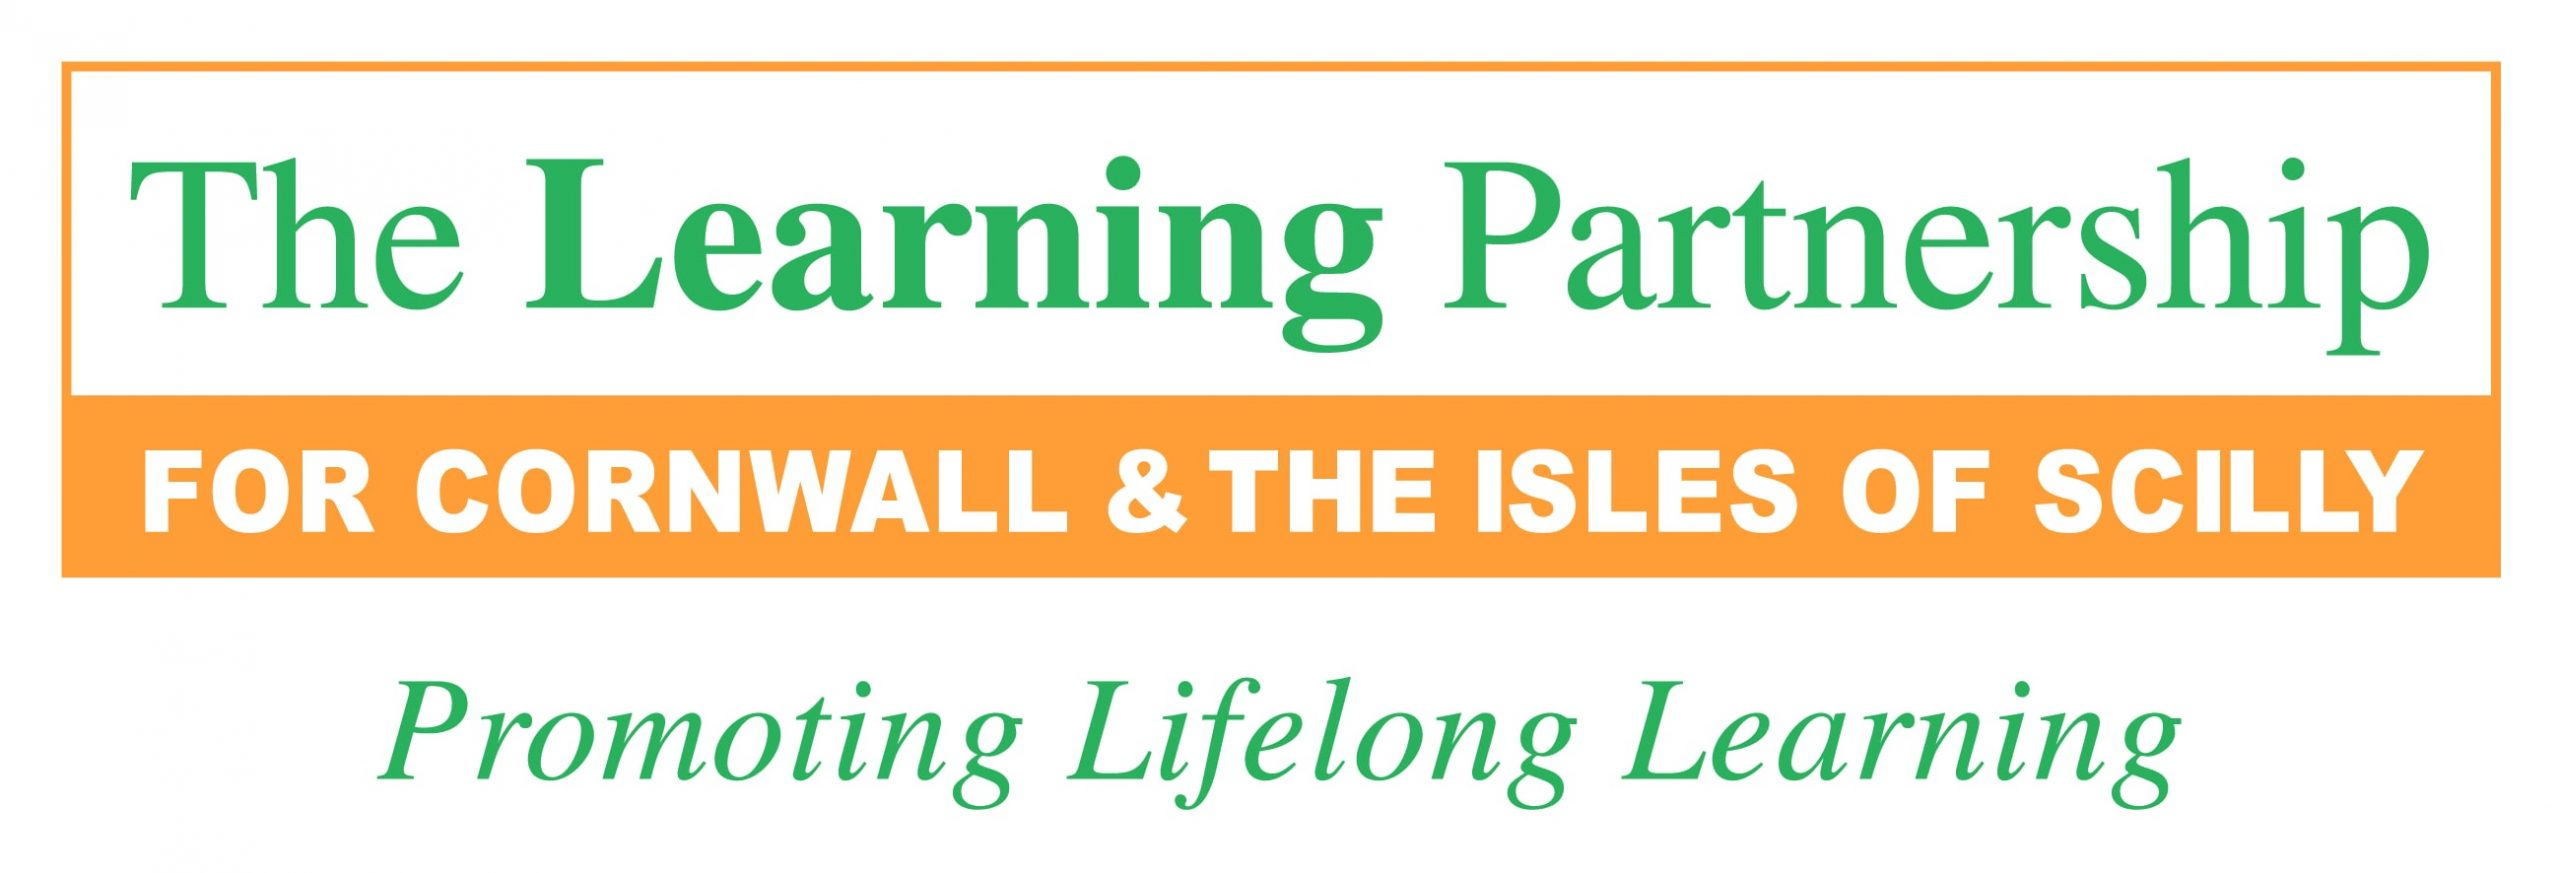 Learning Partnership for Cornwall and the Isles of Scilly Ltd